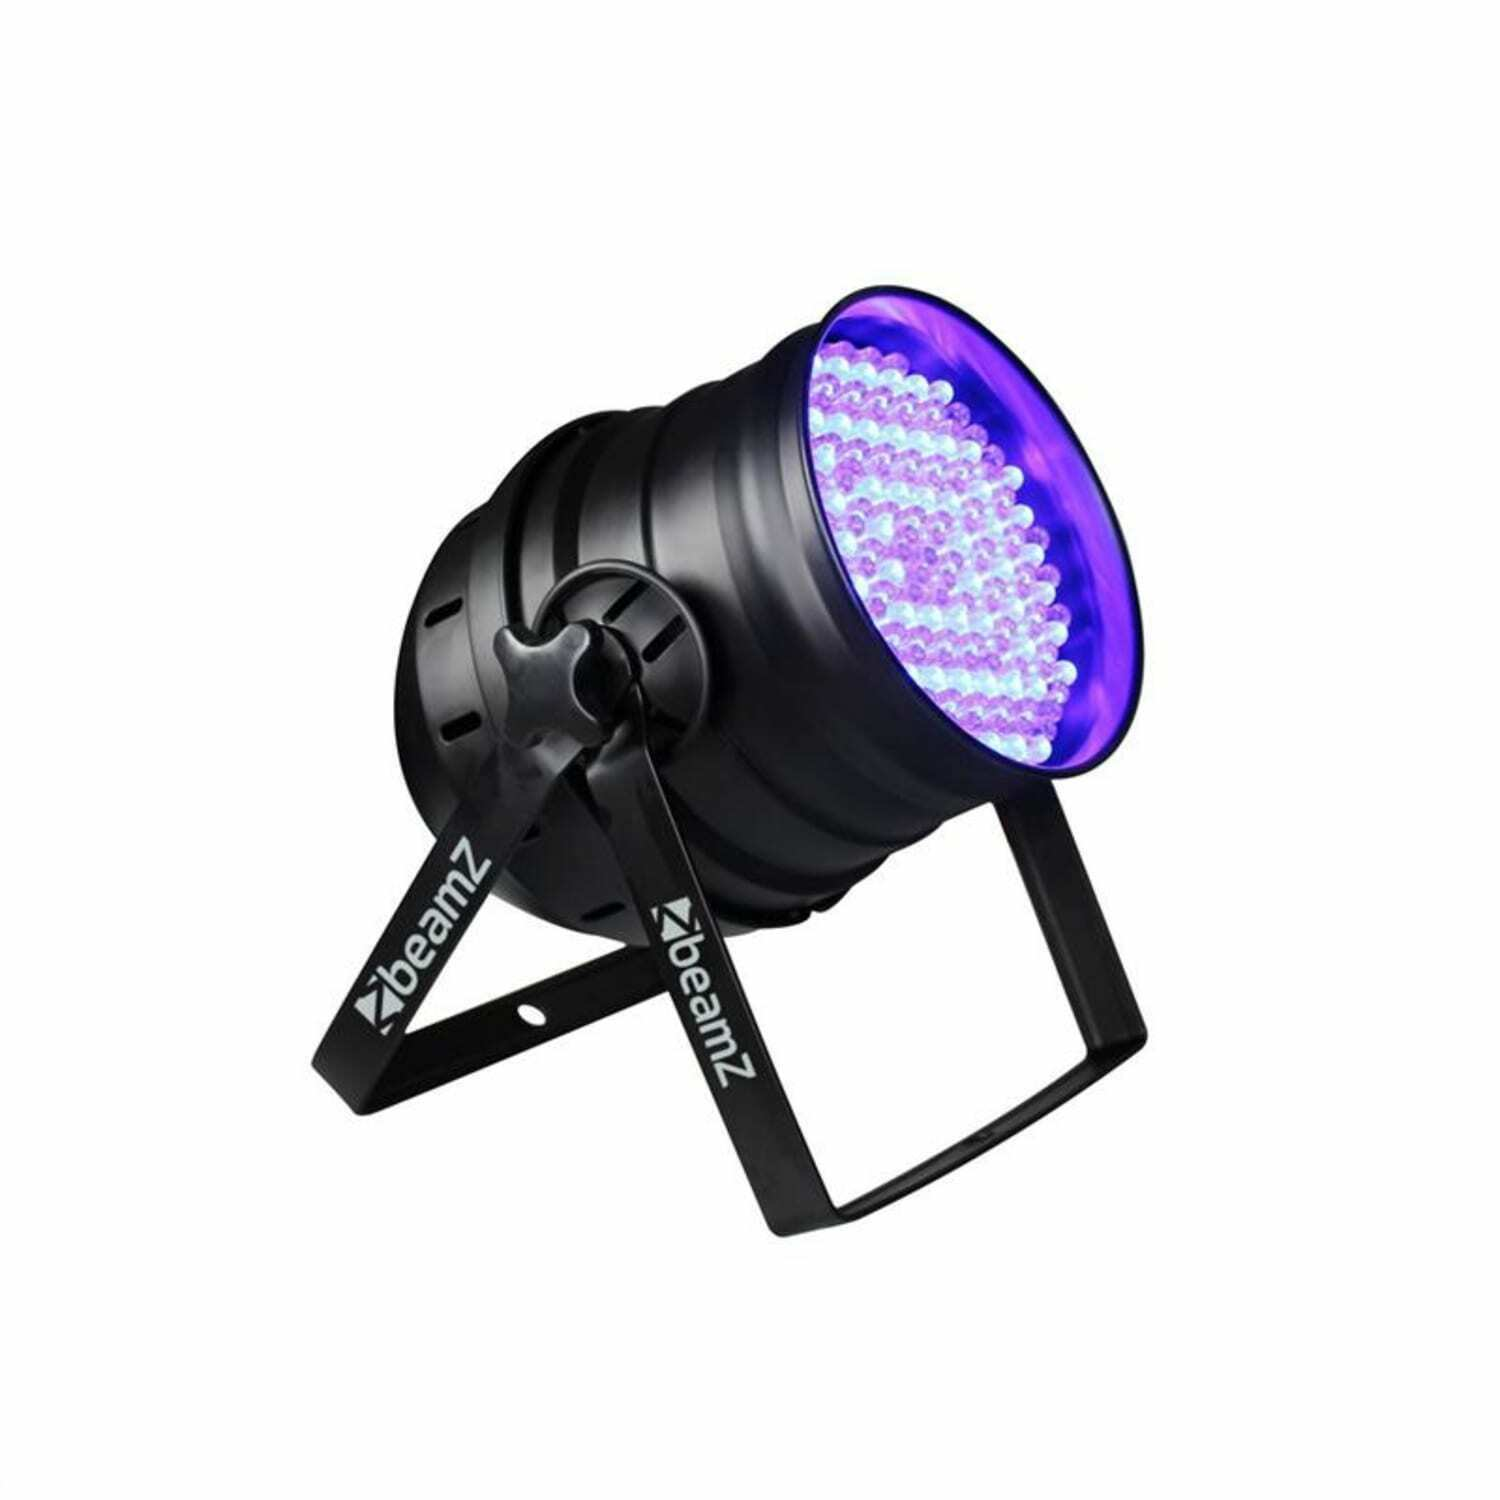 beamz led par 64 can led licht effekt rgb dmx 512 disco strahler dj scheinwerfer eur 54 99. Black Bedroom Furniture Sets. Home Design Ideas